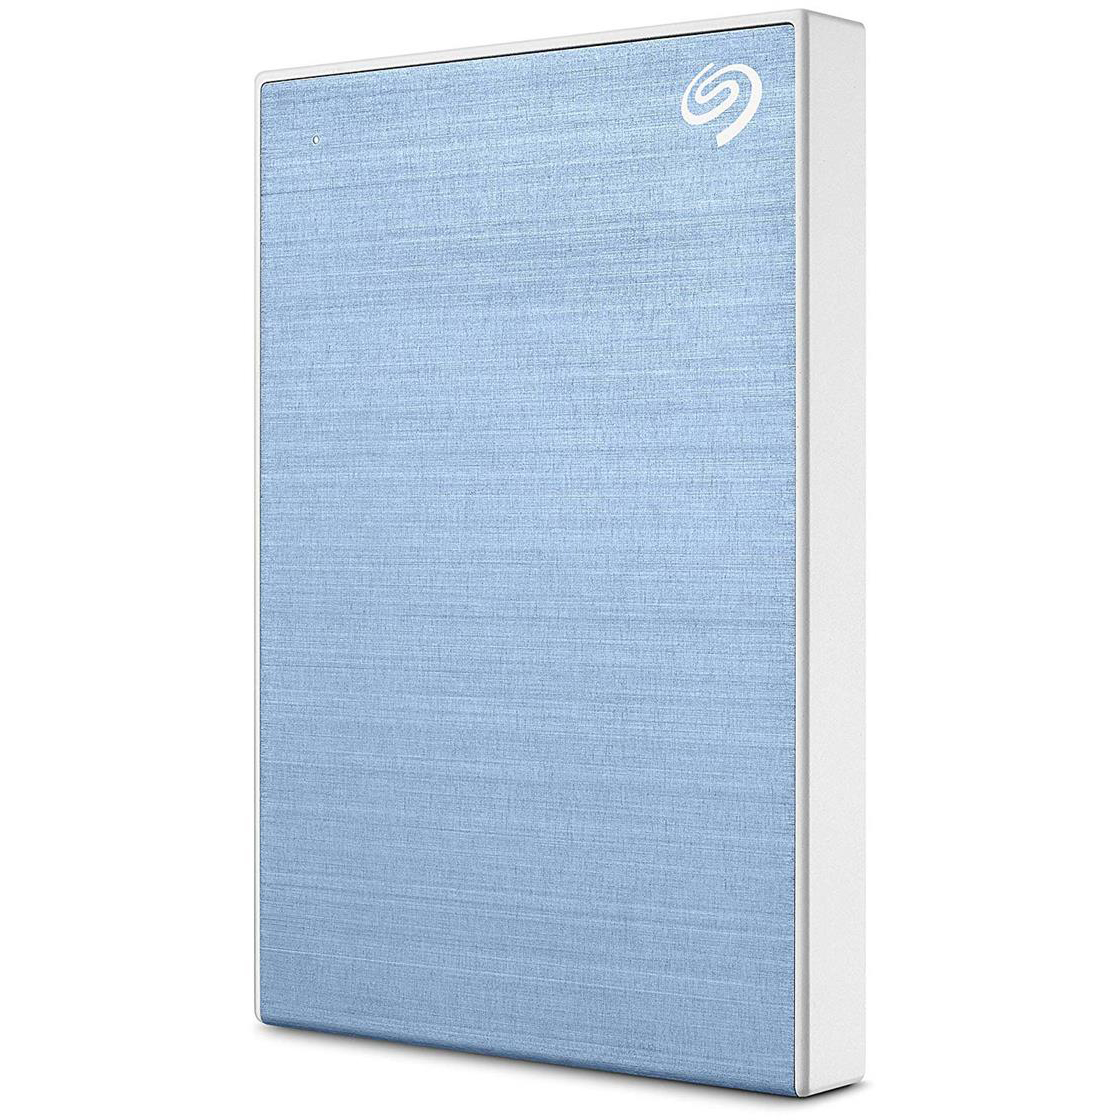 Original Seagate Backup Plus Slim 2TB Blue USB 3.0 External Hard Drive (STHN2000402)